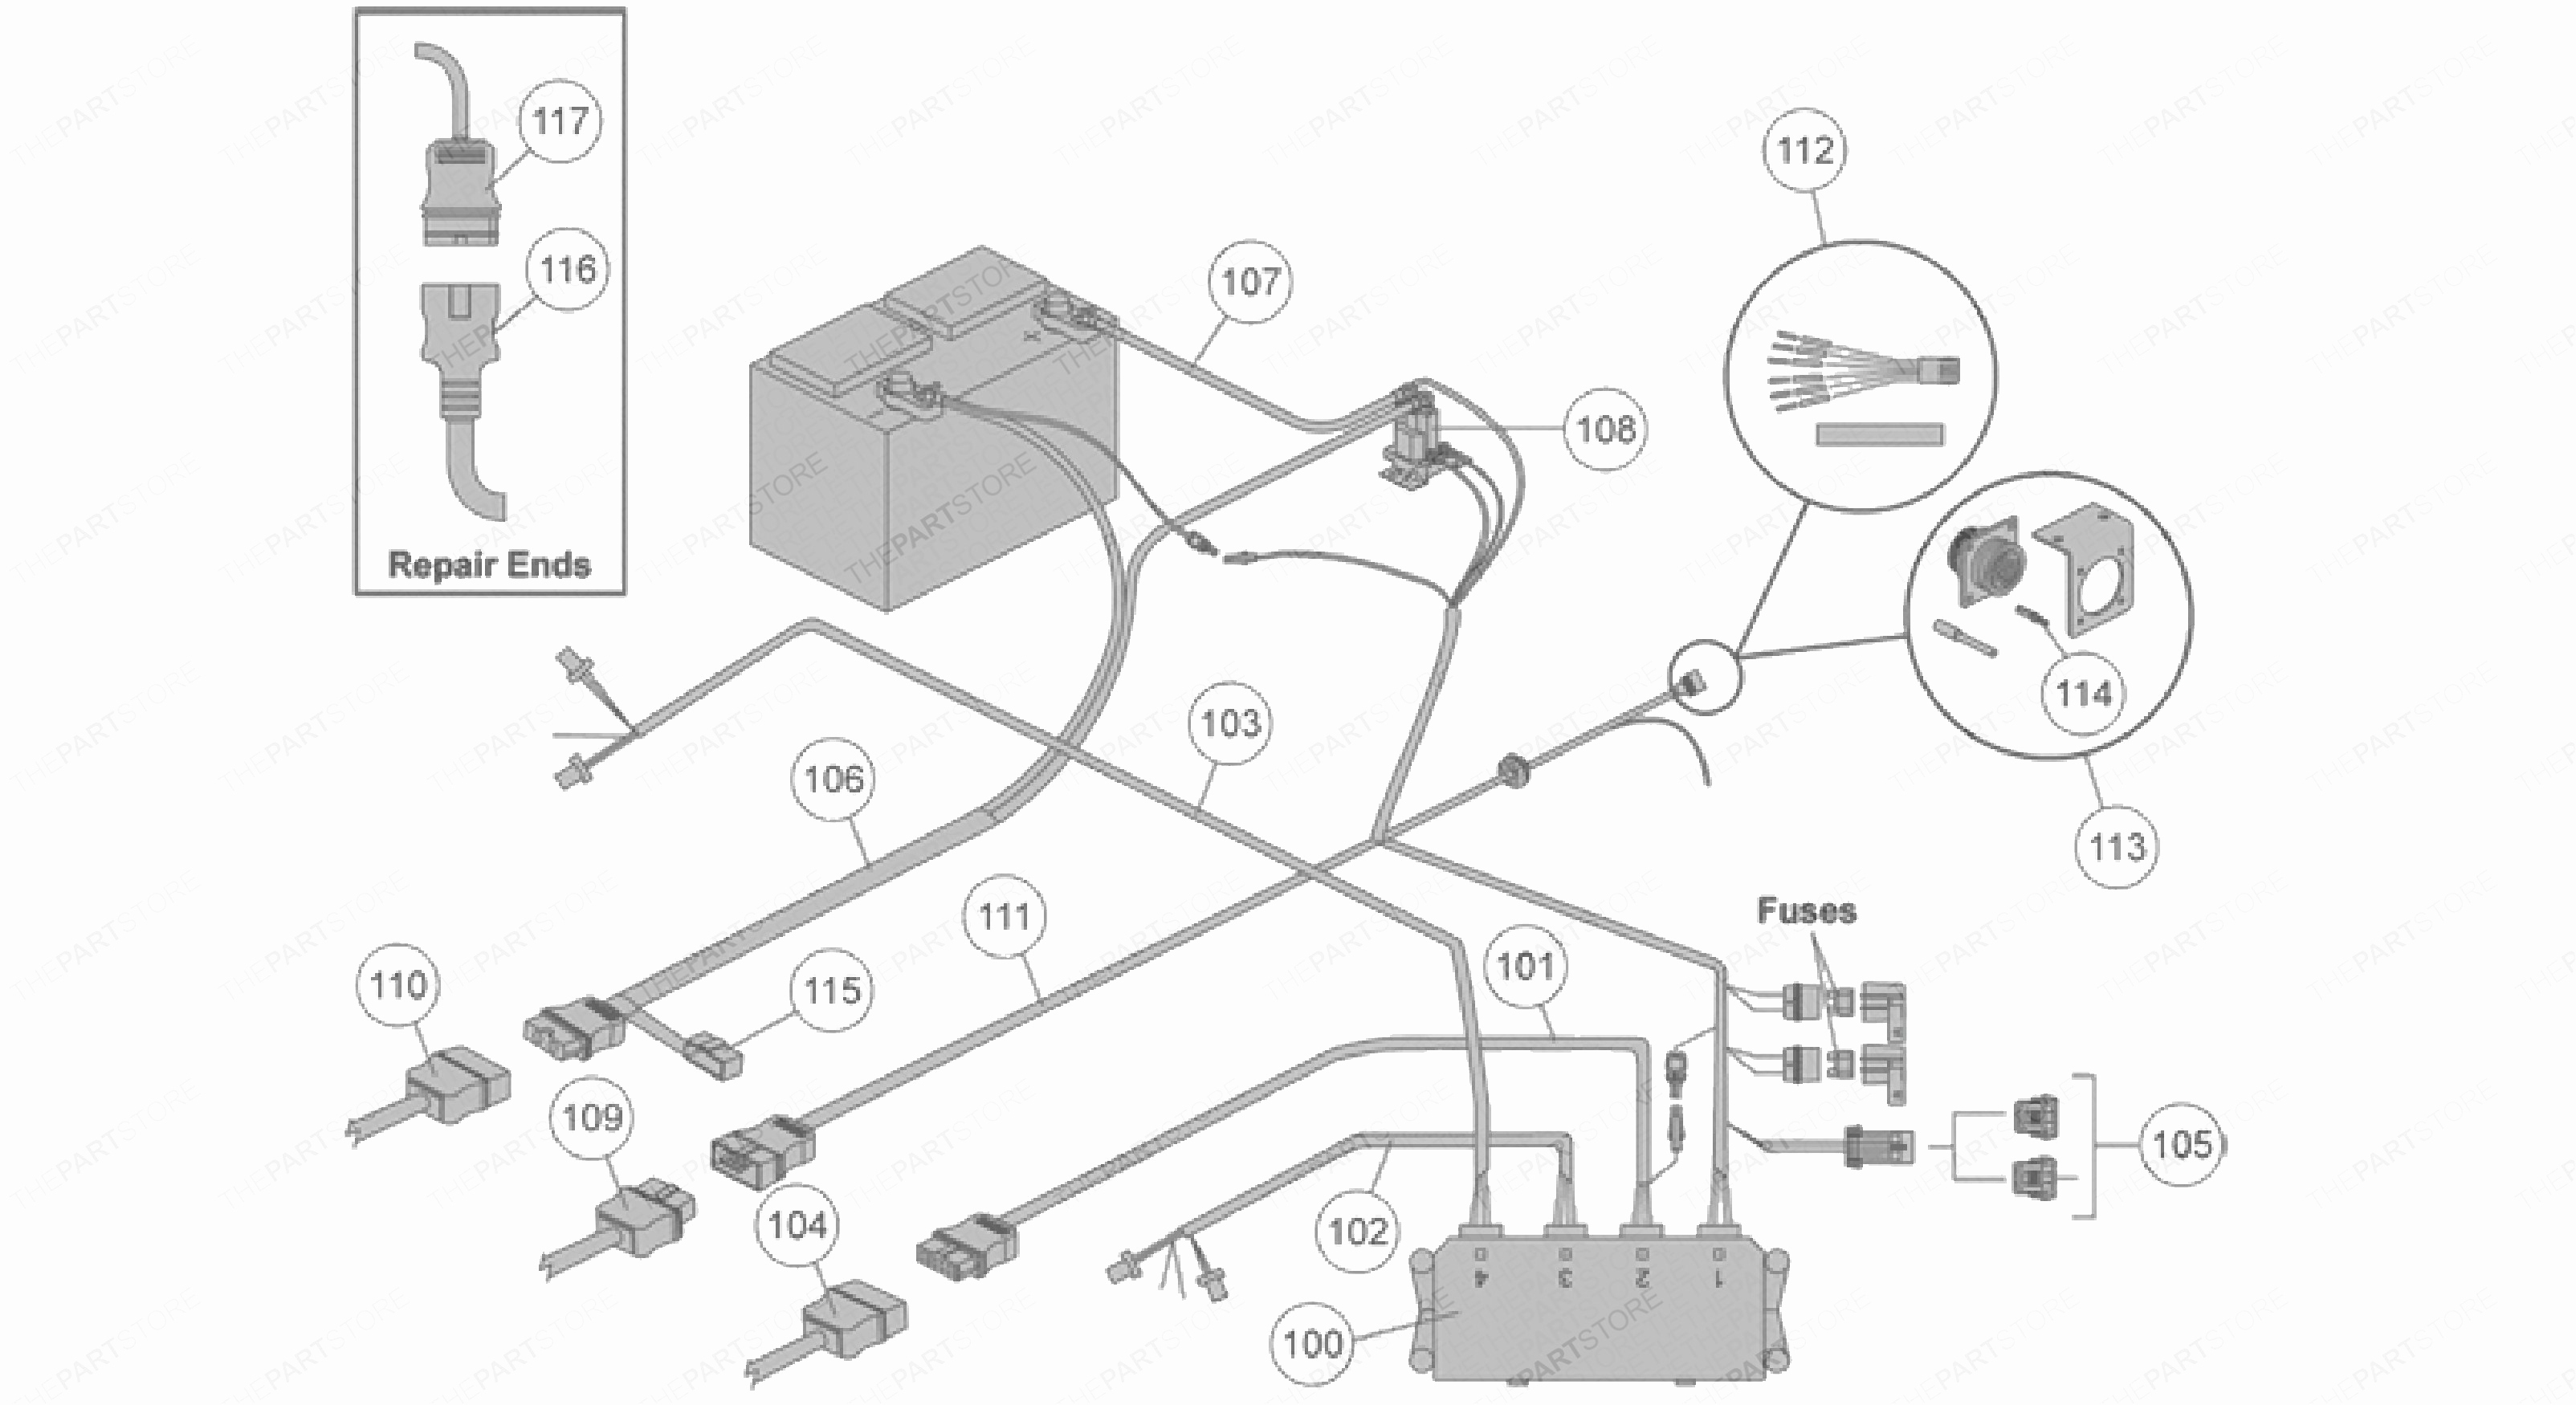 Fisher Minute Mount 2 Wiring Harness Diagram | Wiring Diagram - Fisher 4 Port Isolation Module Wiring Diagram